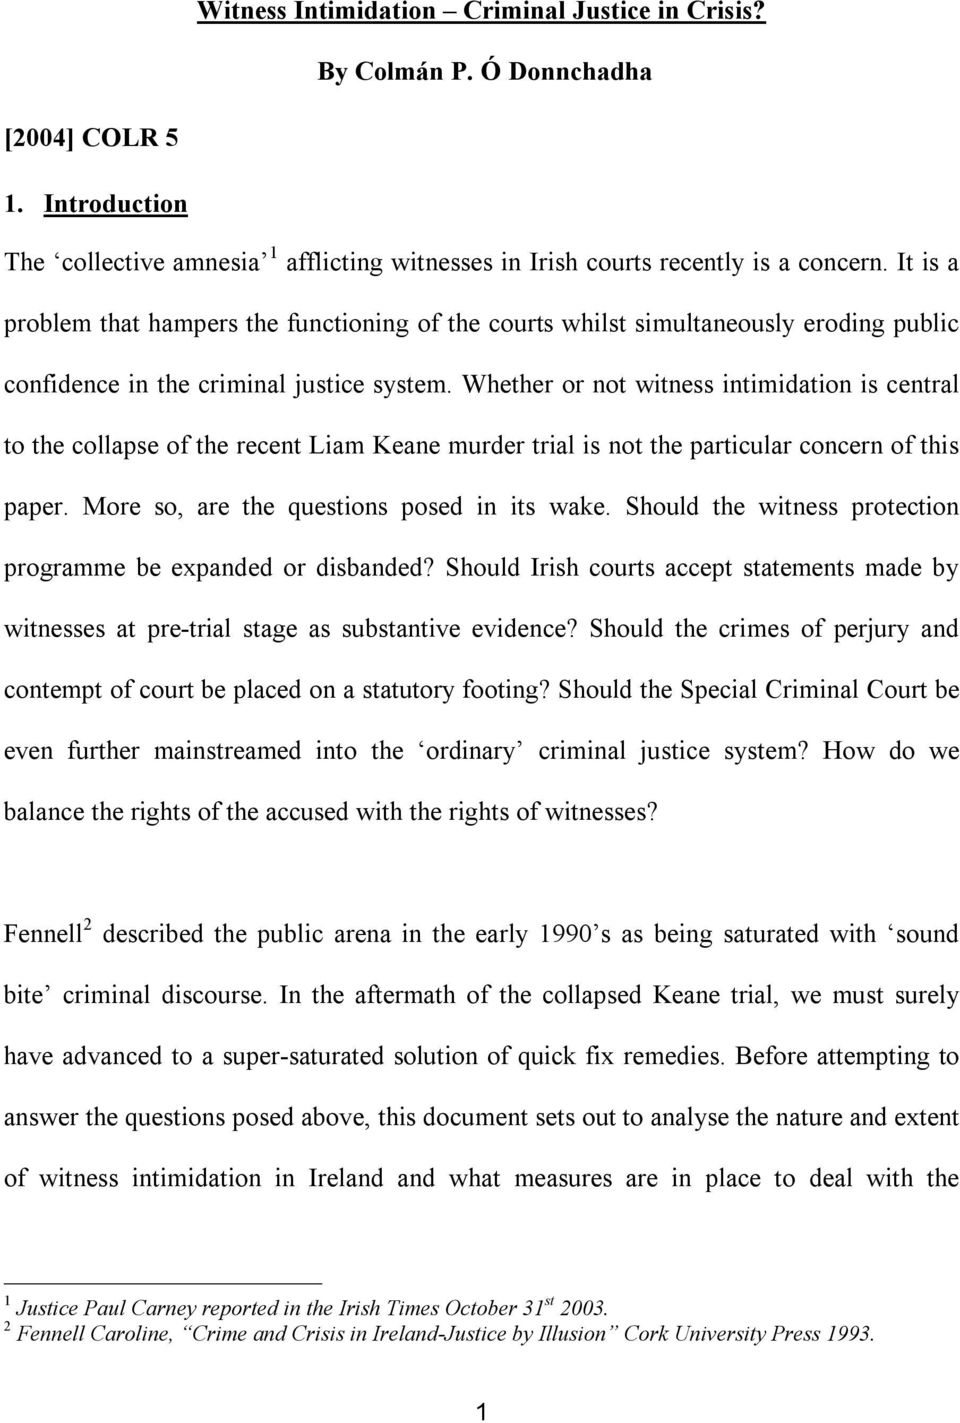 Whether or not witness intimidation is central to the collapse of the recent Liam Keane murder trial is not the particular concern of this paper. More so, are the questions posed in its wake.